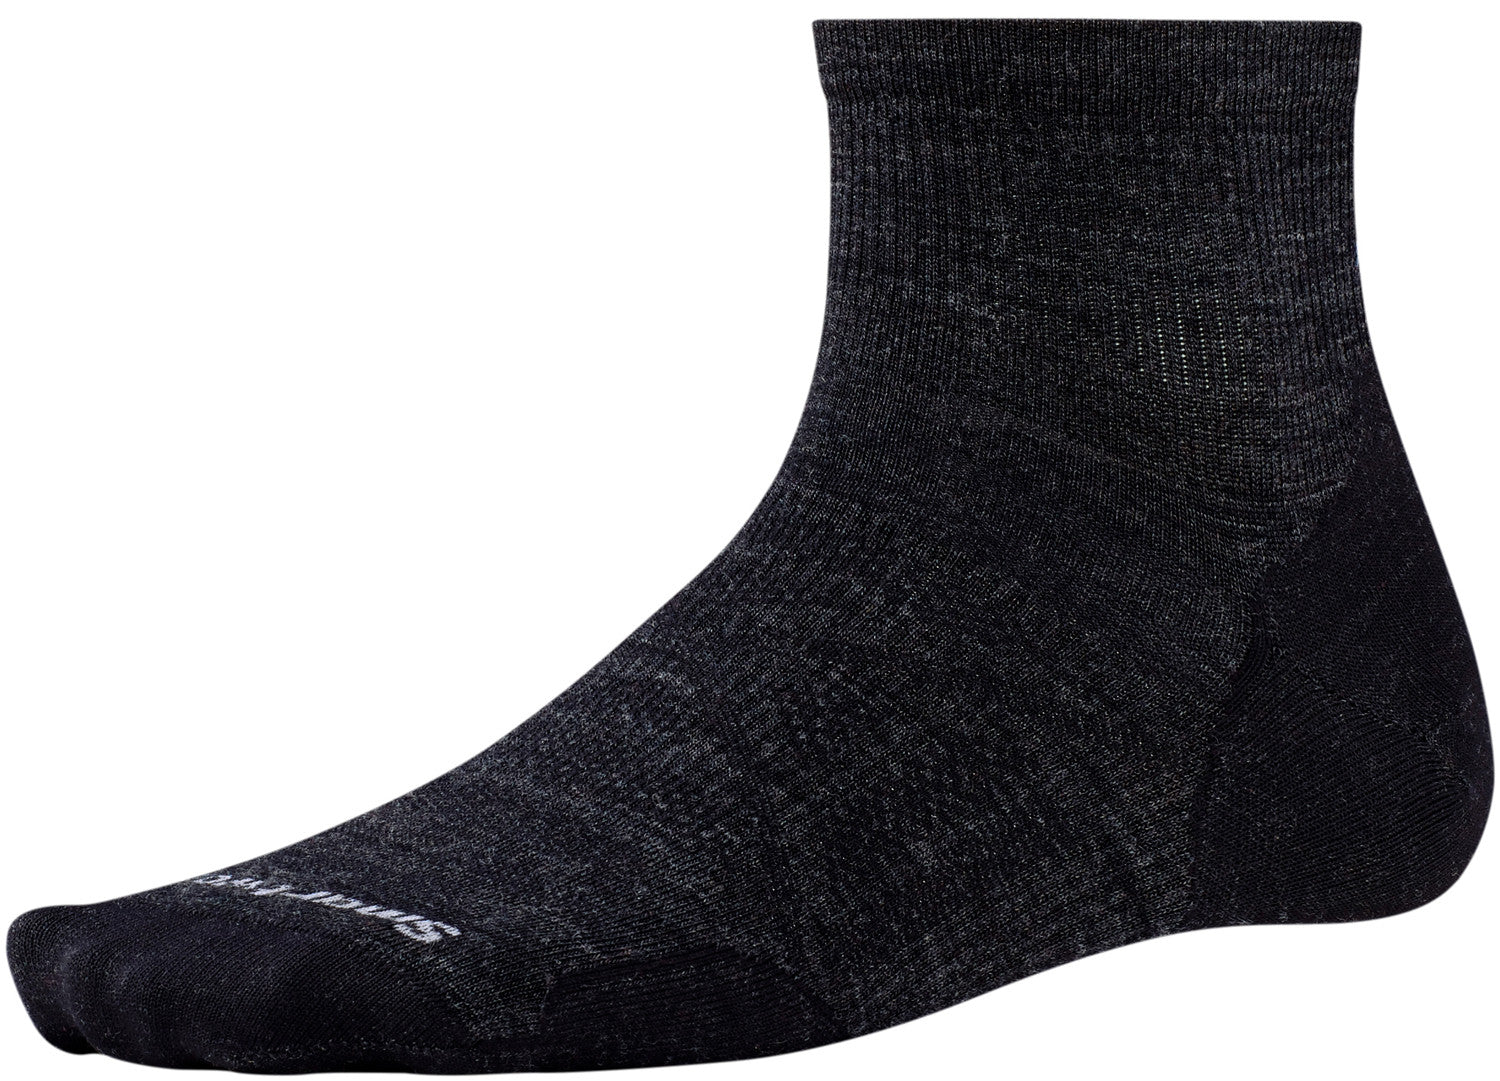 Smartwool Indestructawool™ PhD Outdoor Ultra Light Mini Socks - Charcoal